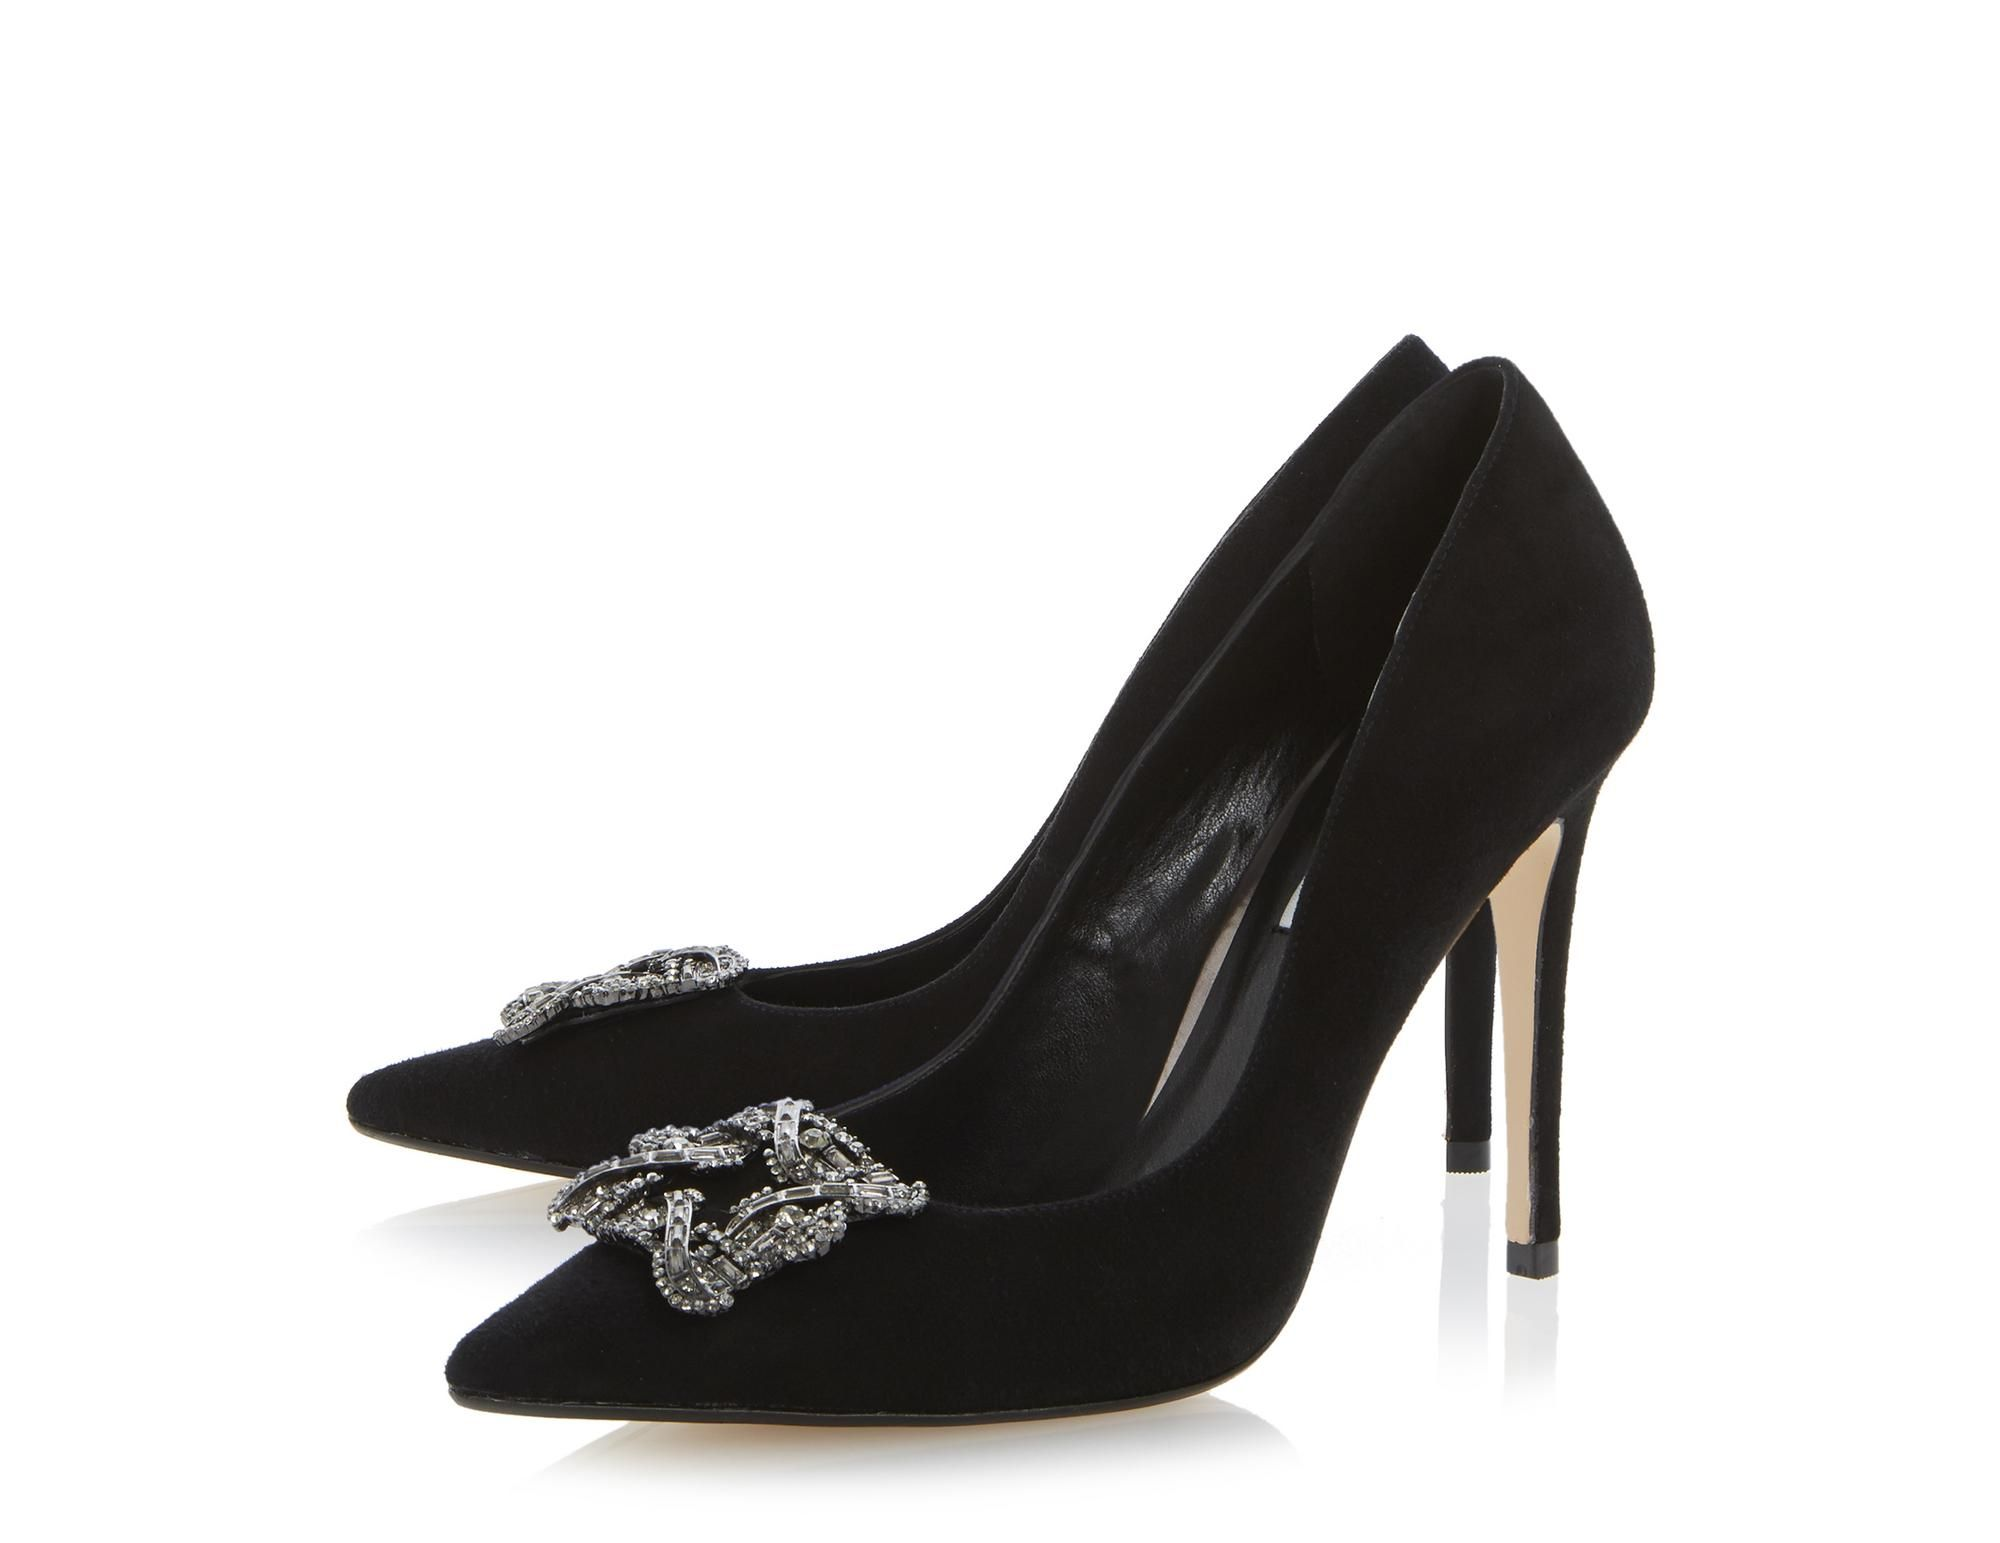 e2febb4e39 DUNE LADIES BREANNA - Jewelled Square Brooch Pointed Toe Court Shoe - black  | Dune Shoes Online